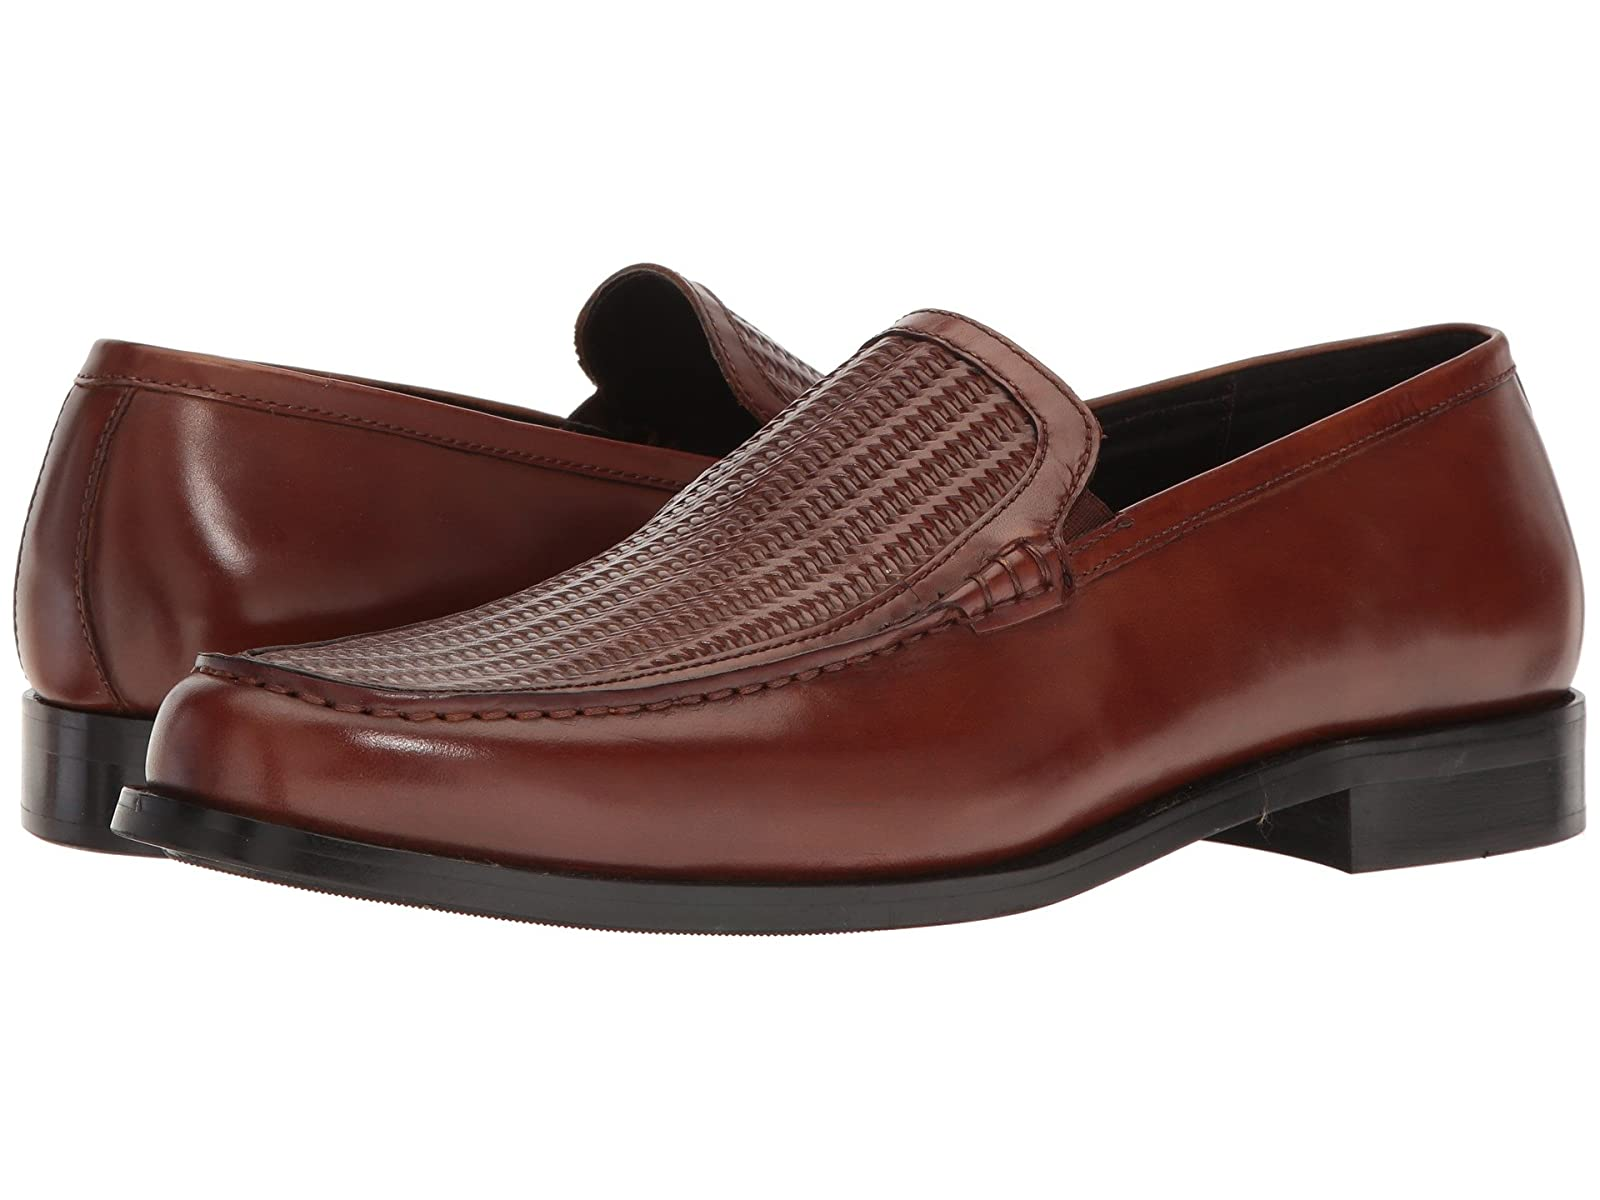 Kenneth Cole New York Filter ItCheap and distinctive eye-catching shoes